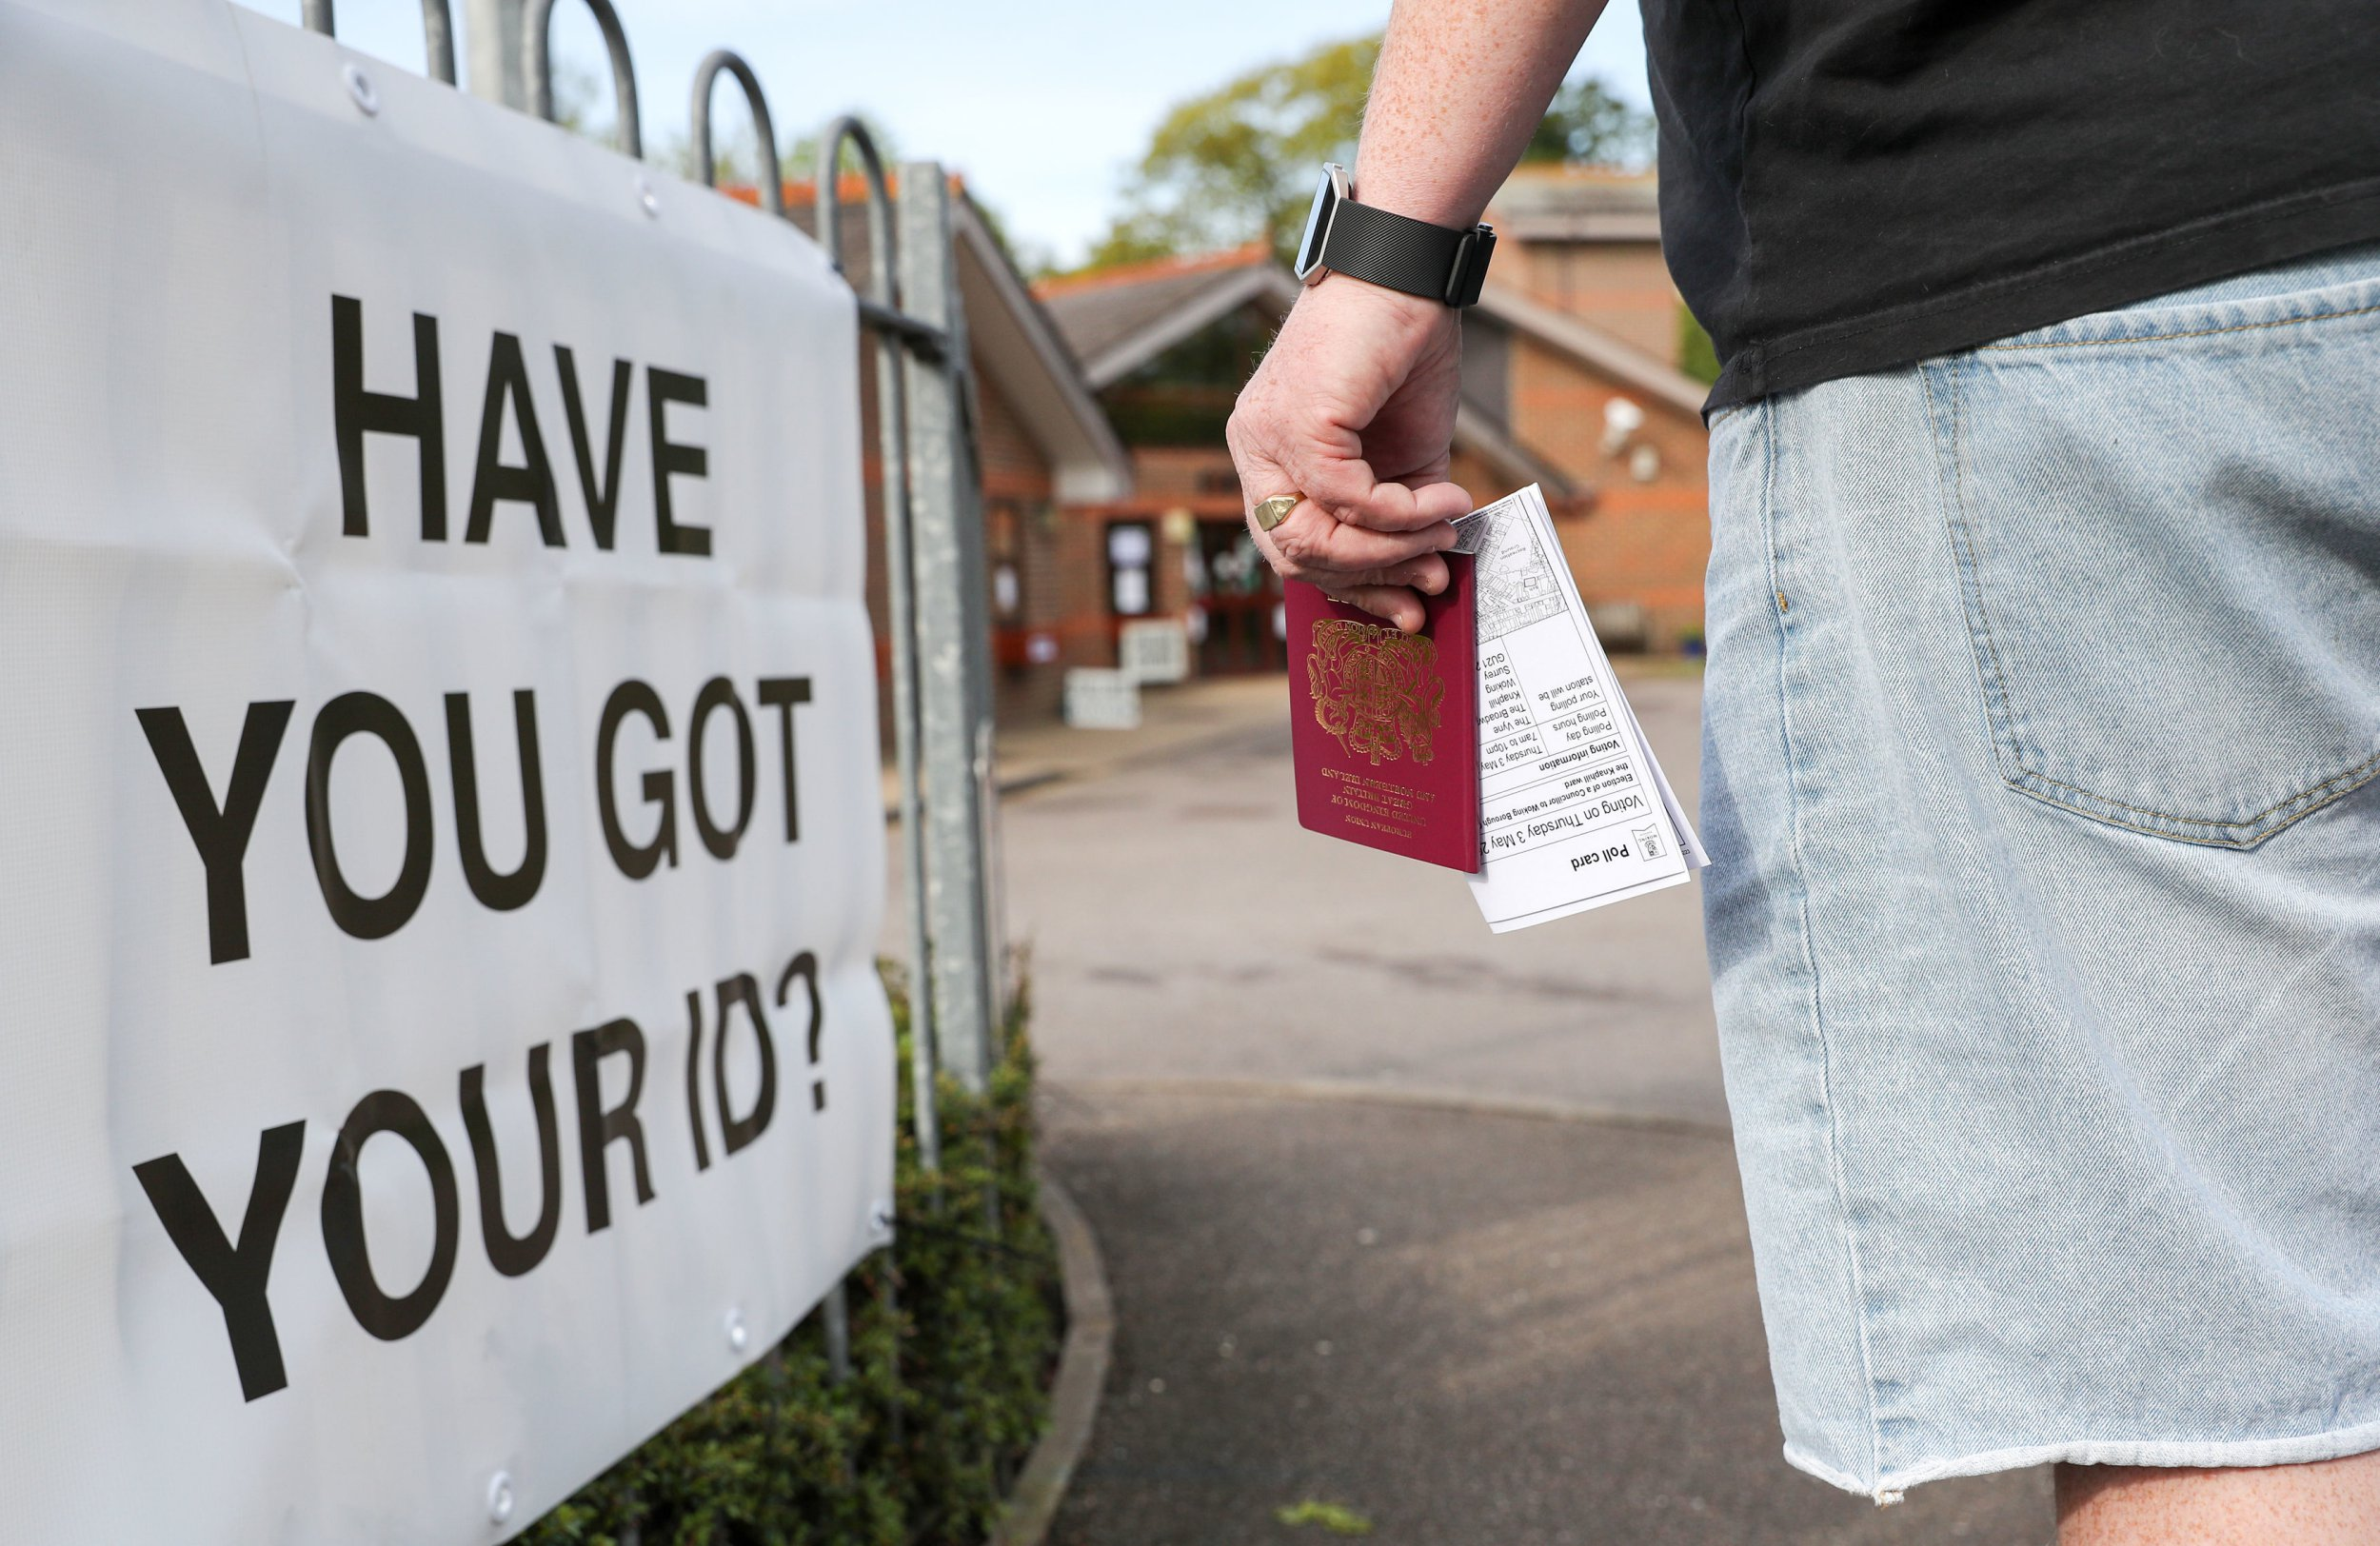 Far fewer people were turned away from voting than we were led to believe